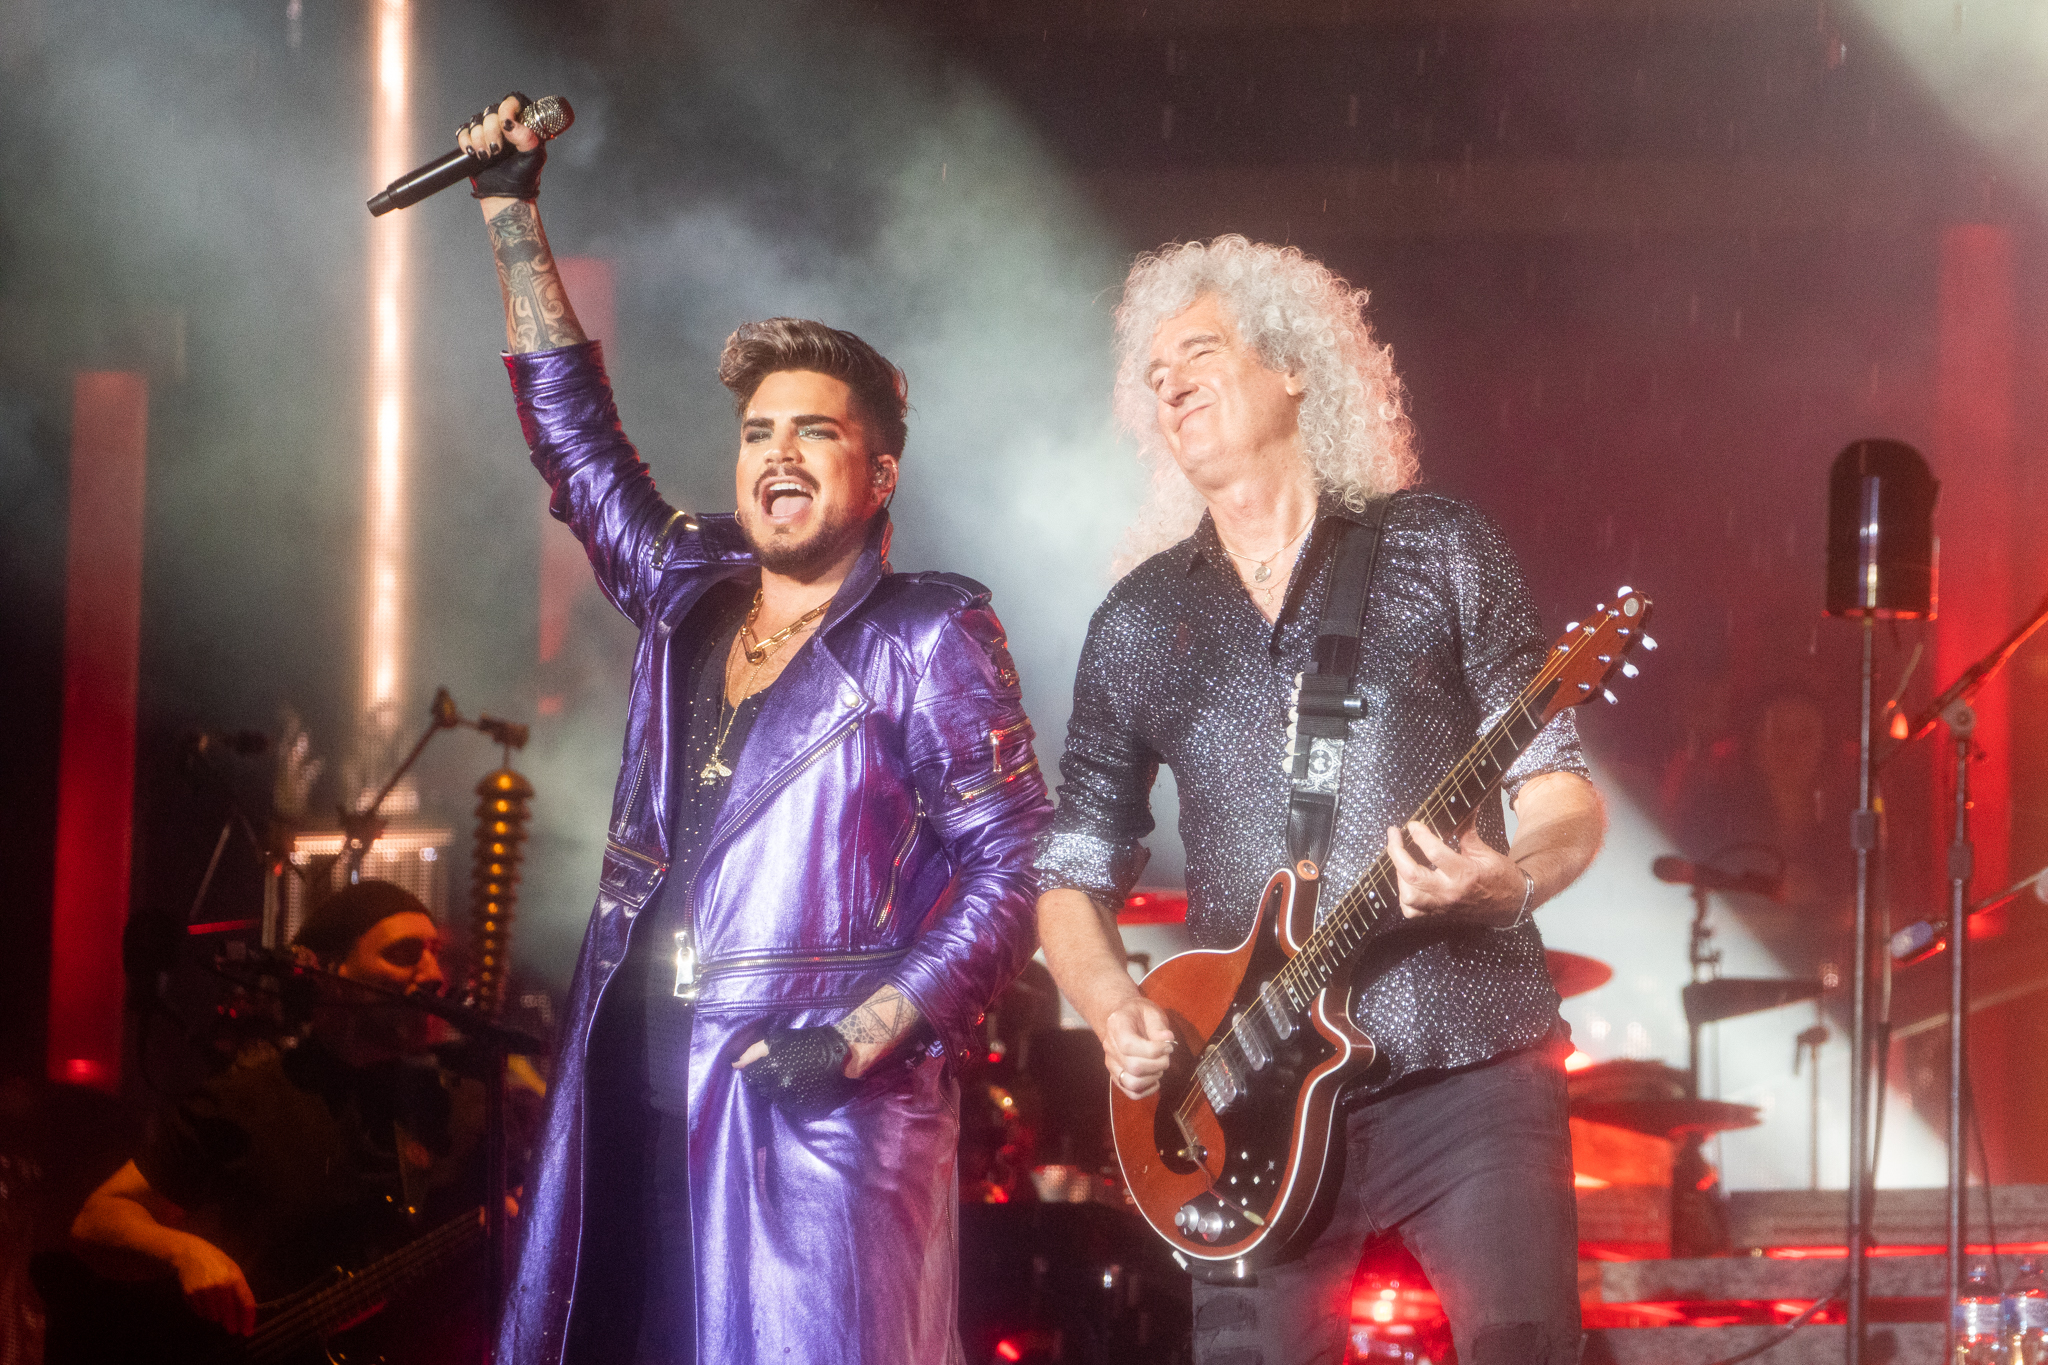 REVIEW: Even In Torrential Rain, Queen Deliver 'Superb' Showing At First Stop On Aussie Tour